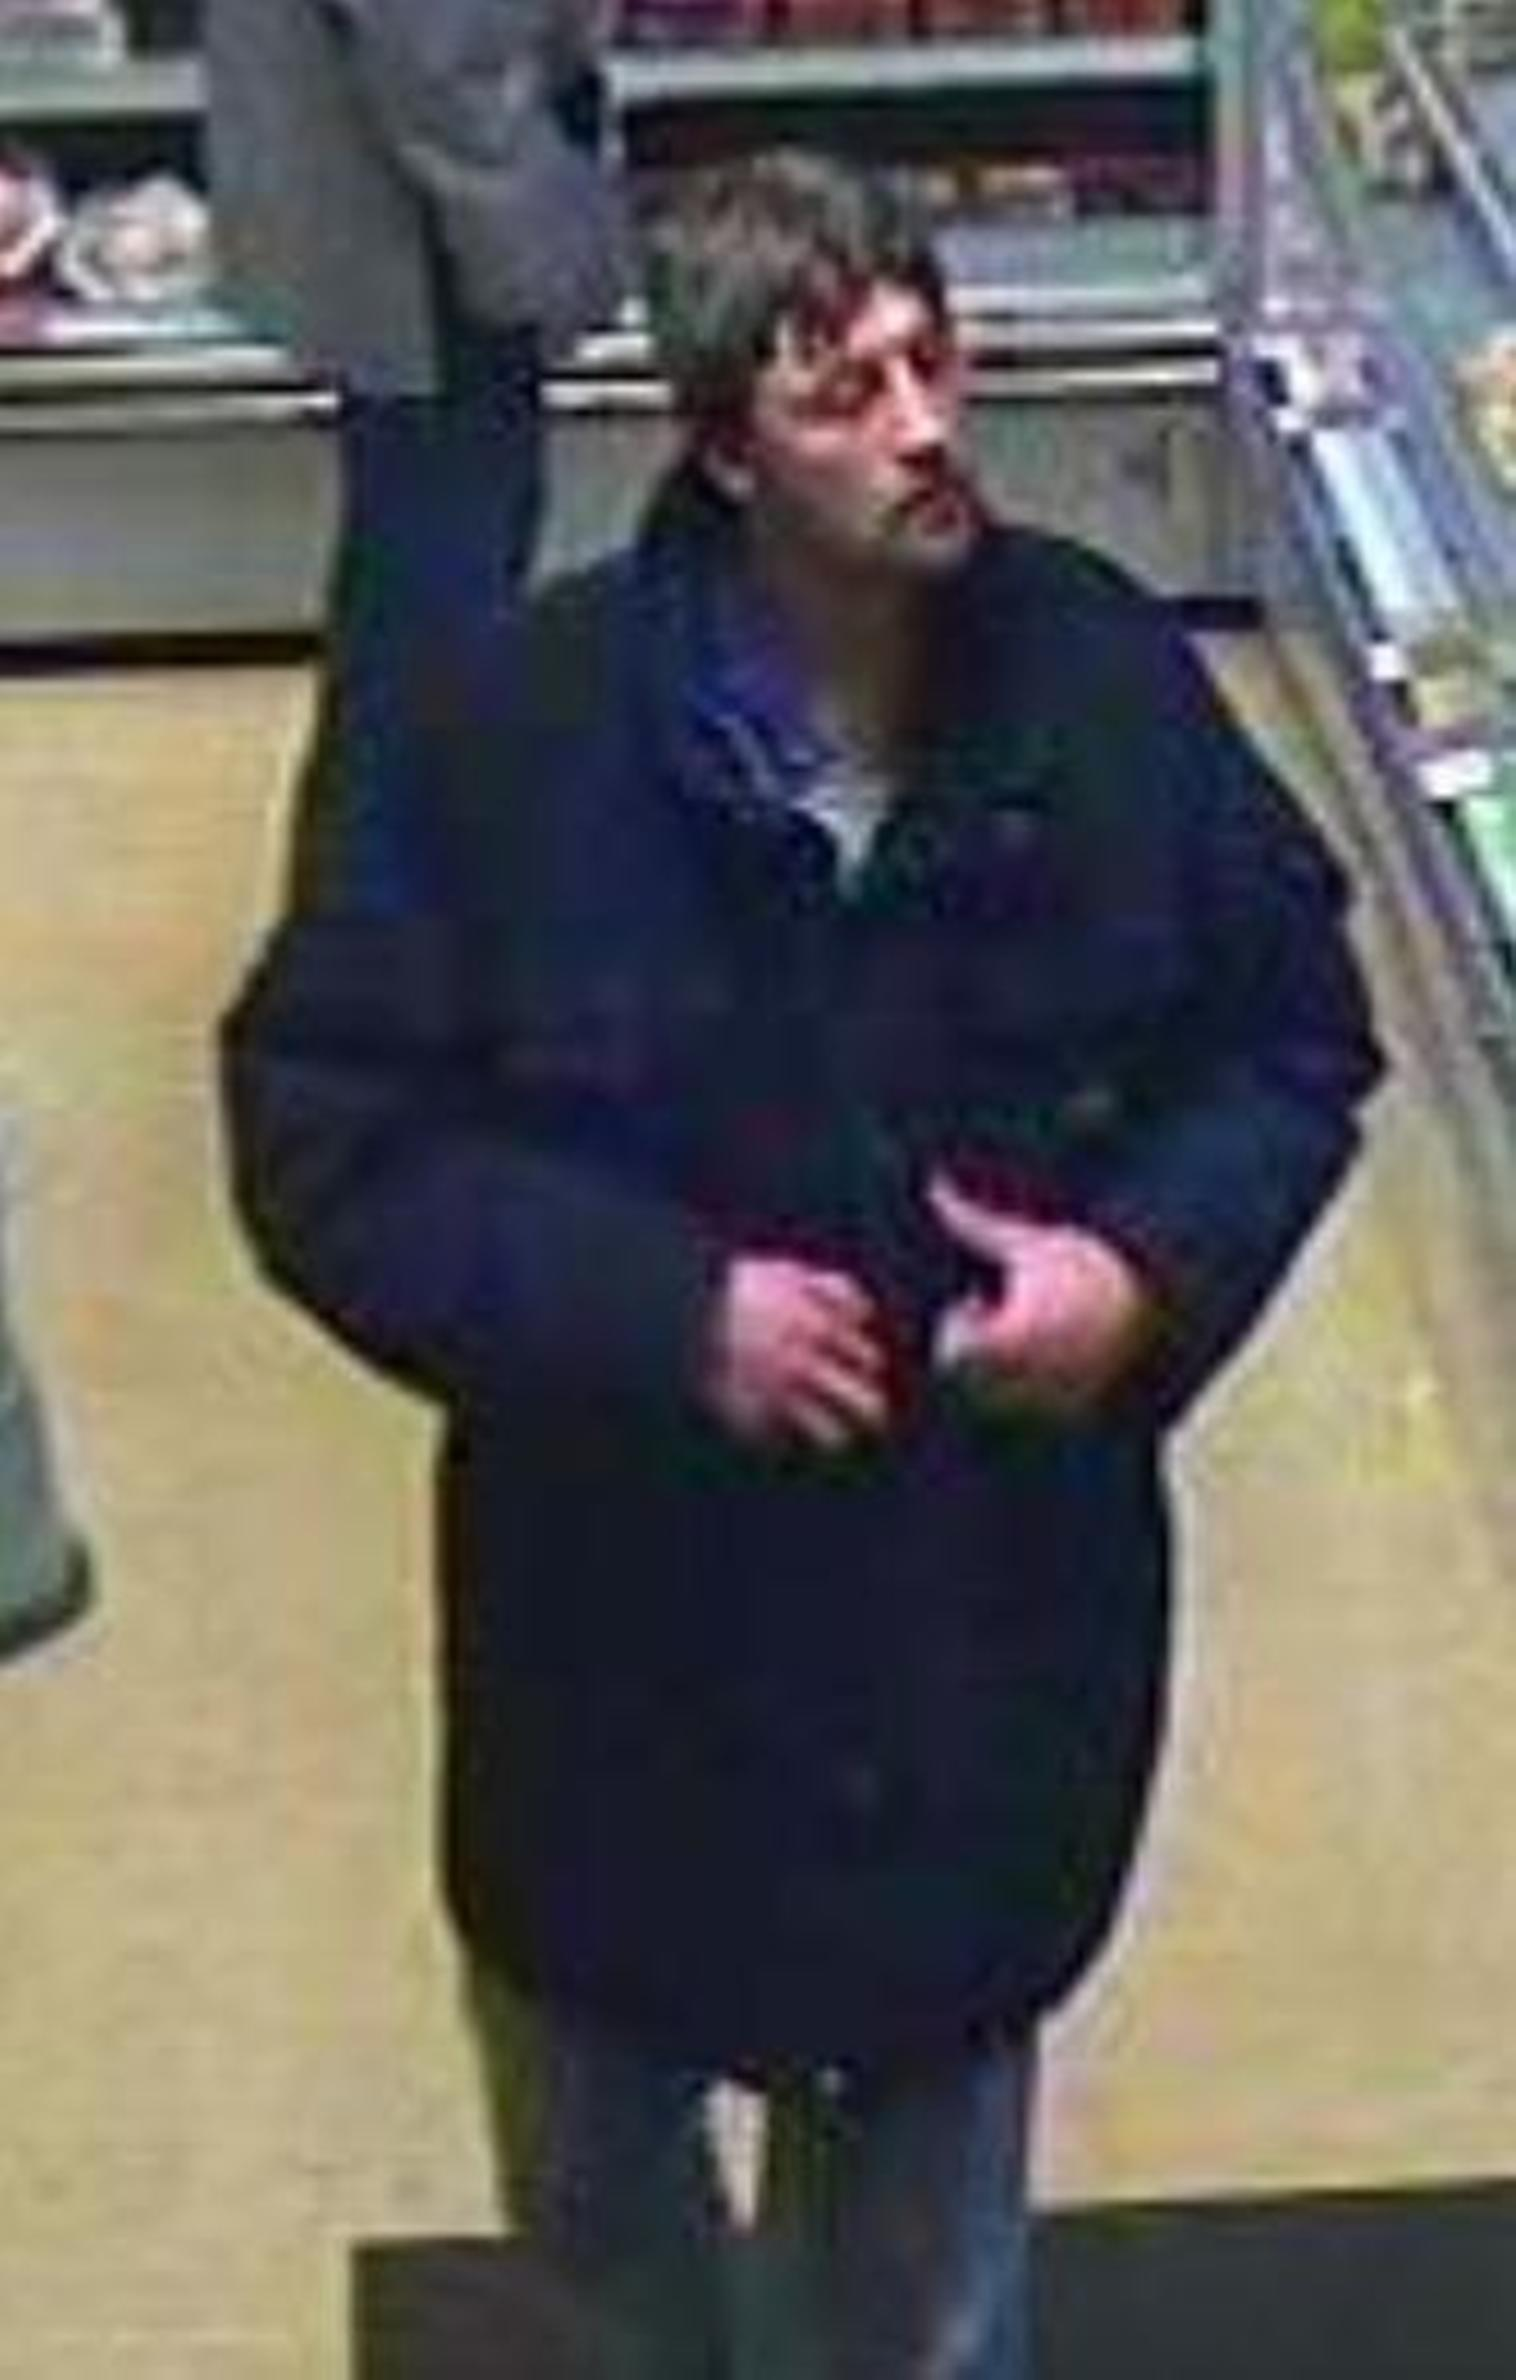 The man is alleged to have gone into the store in the High Street at 4pm on Monday, January 6